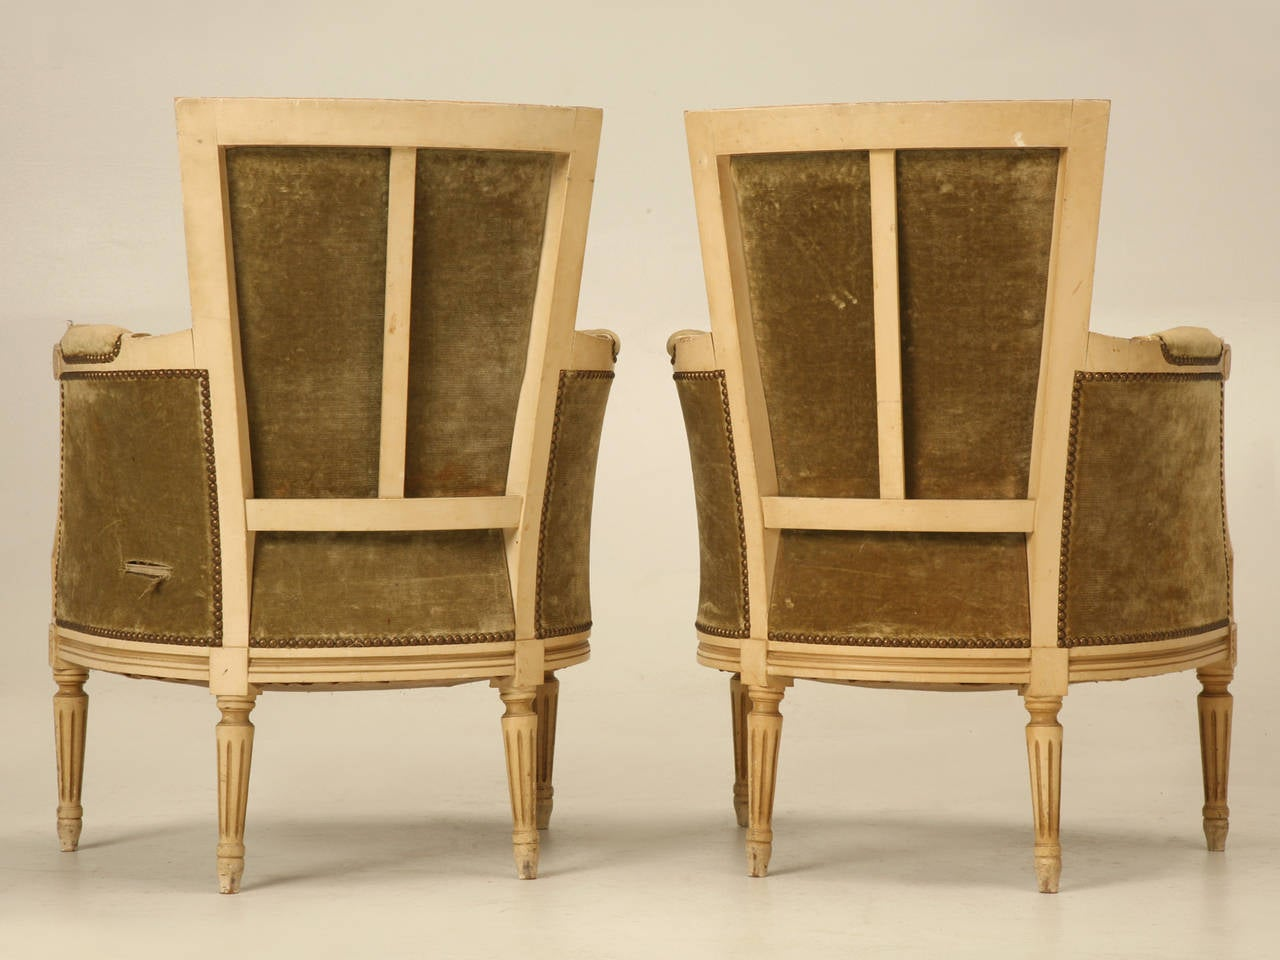 Louis XVI Style Bergere Chairs in Original Paint For Sale 5